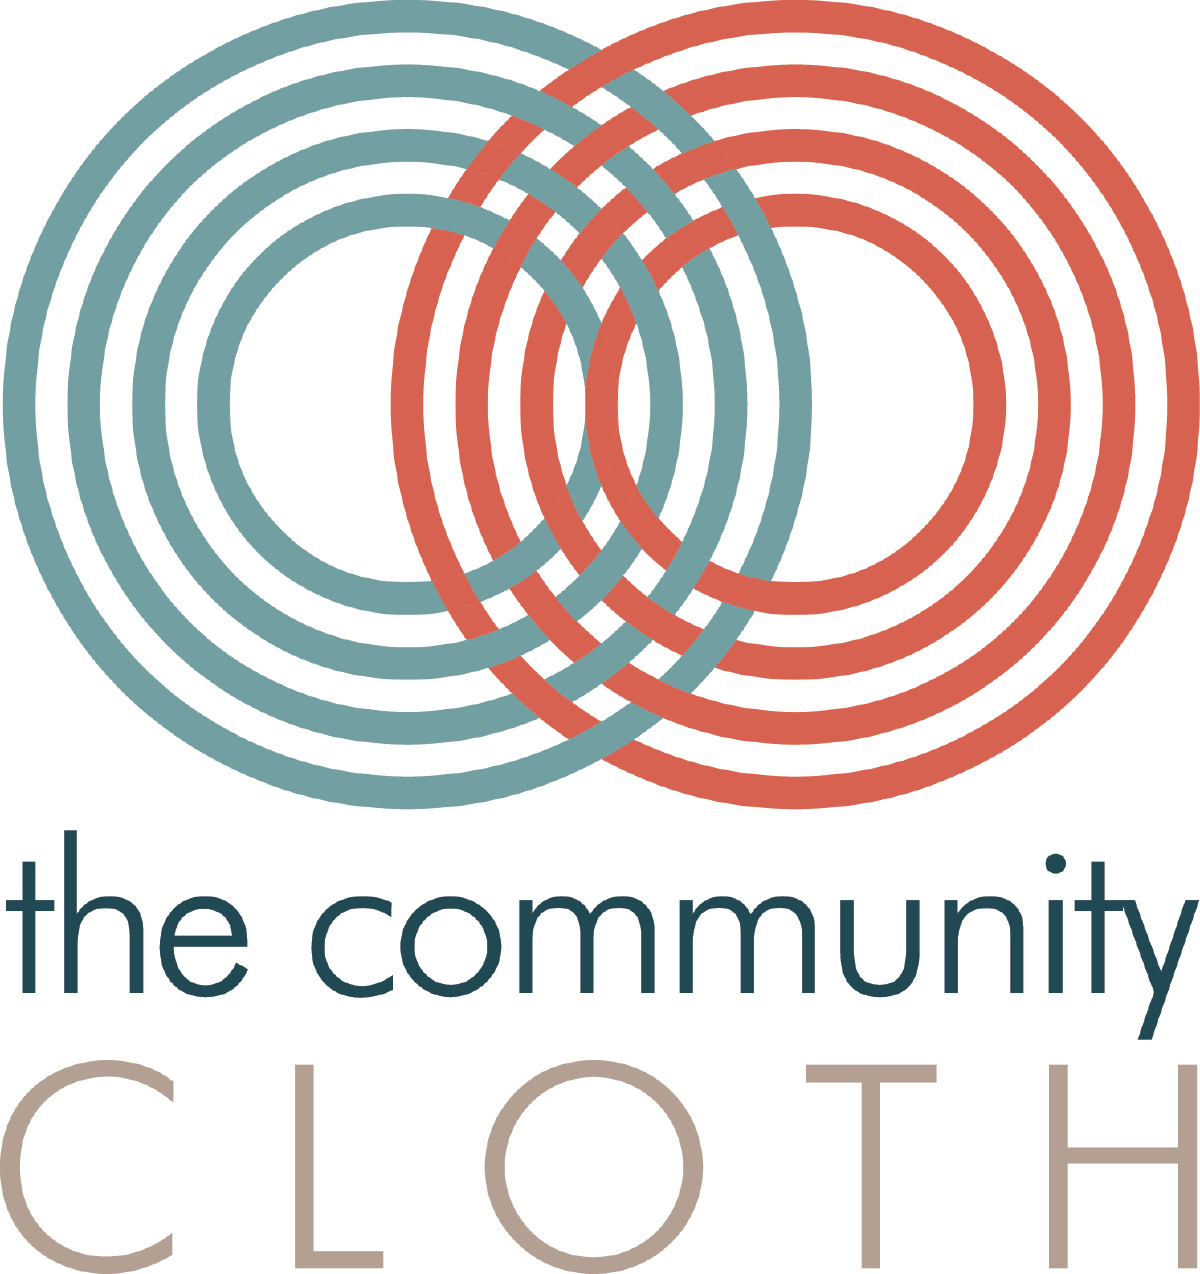 The Community Cloth